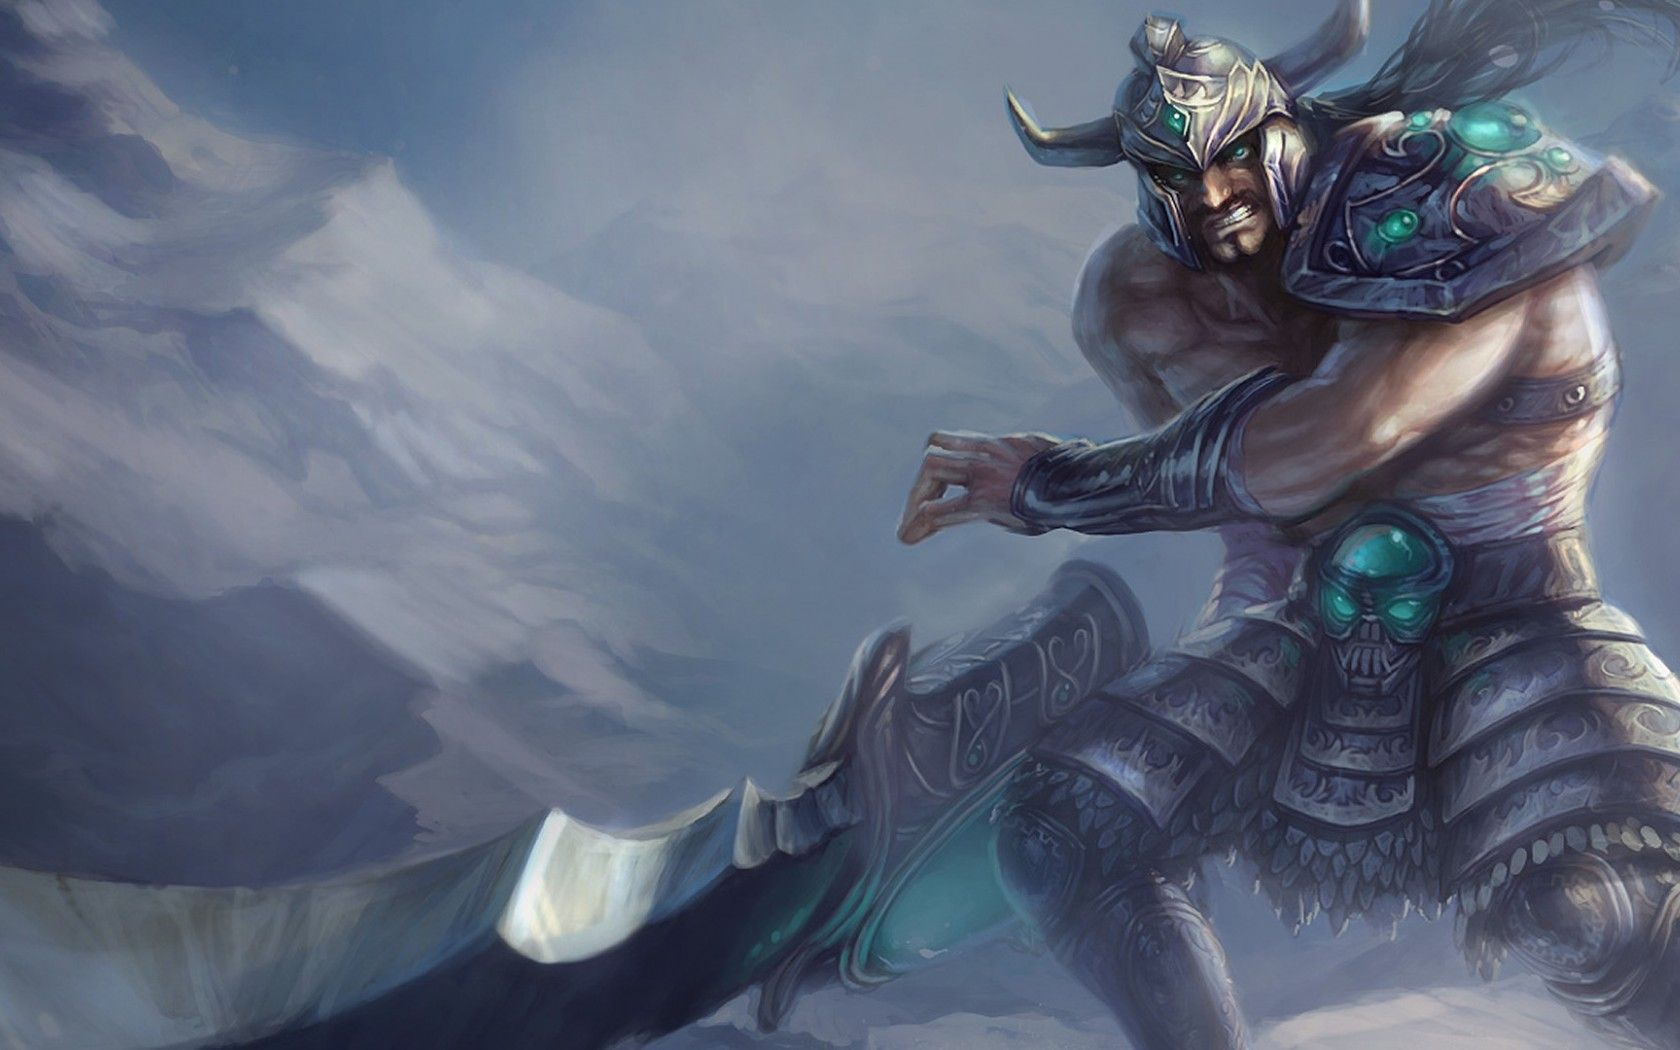 Tryndamere League Of Legends Animated Wallpaper For Desktop And